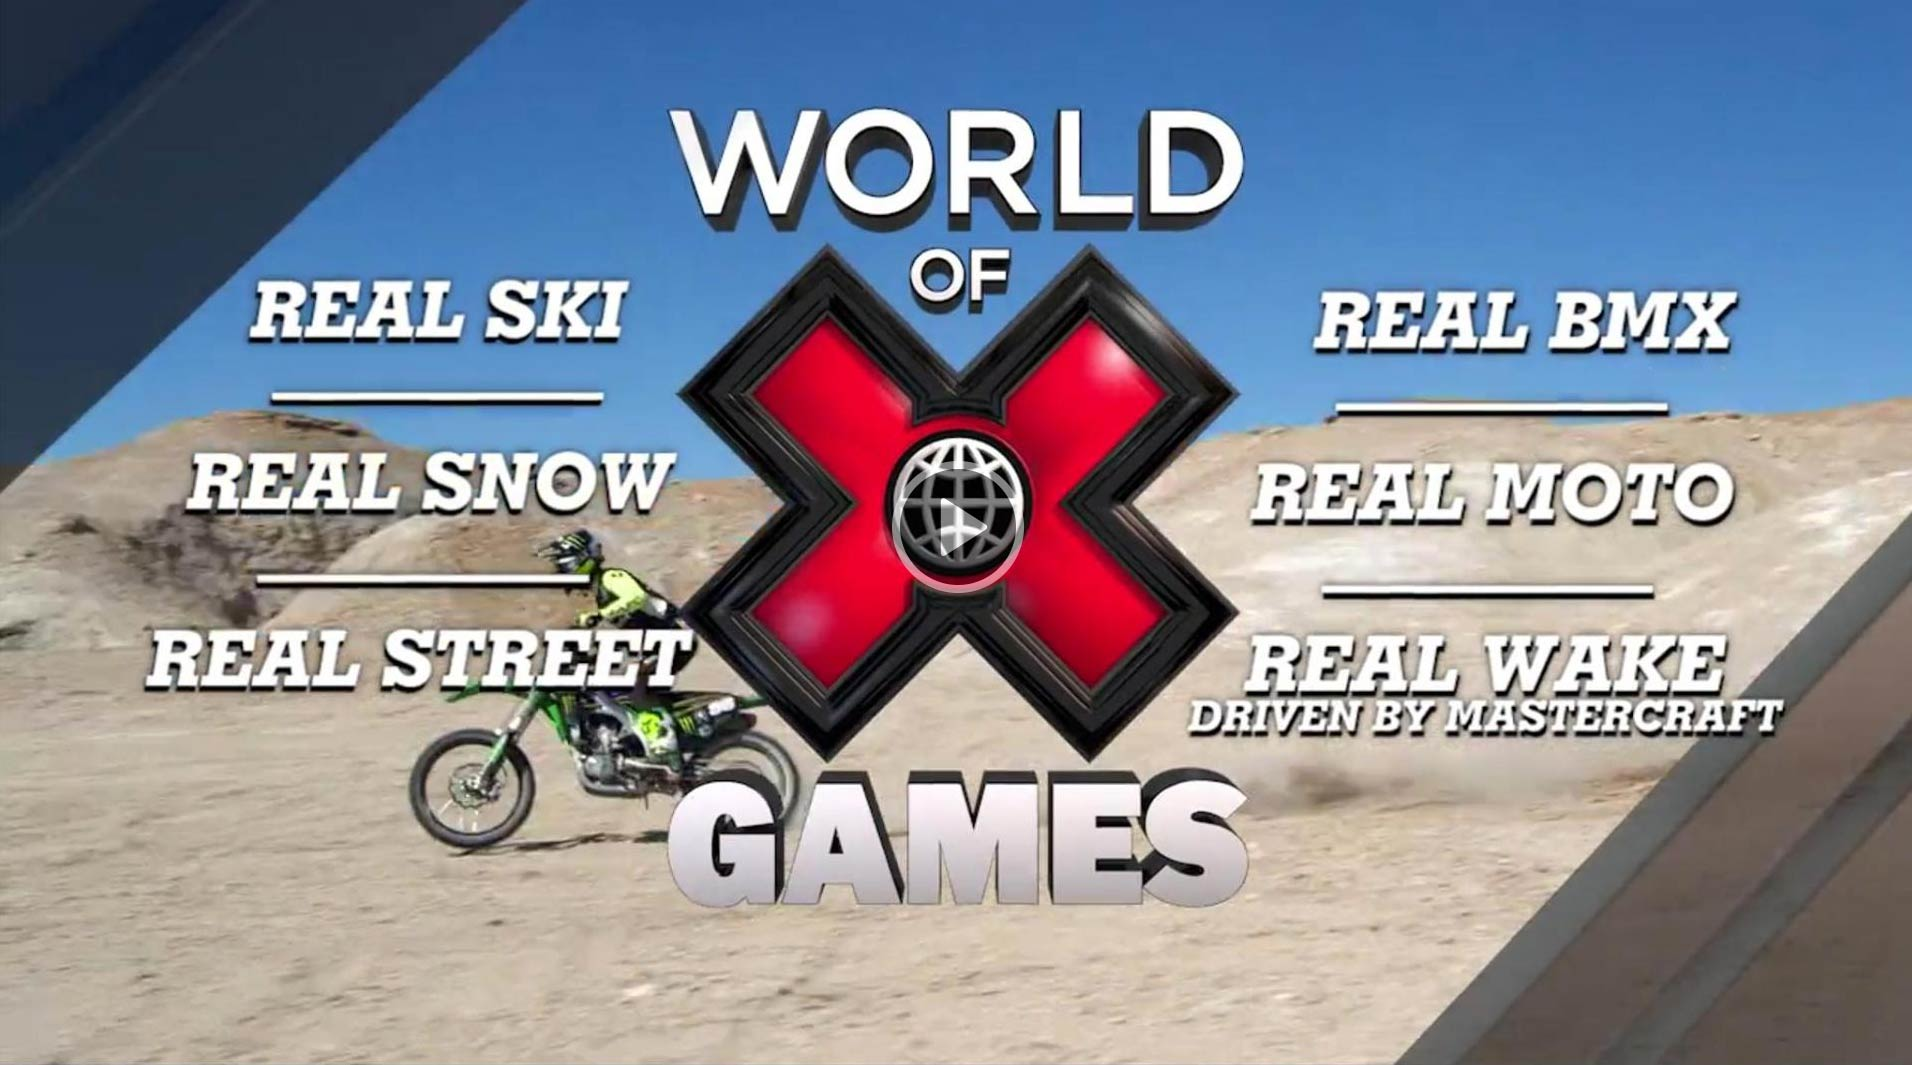 Alle X Games Real Ski 2018 Rider